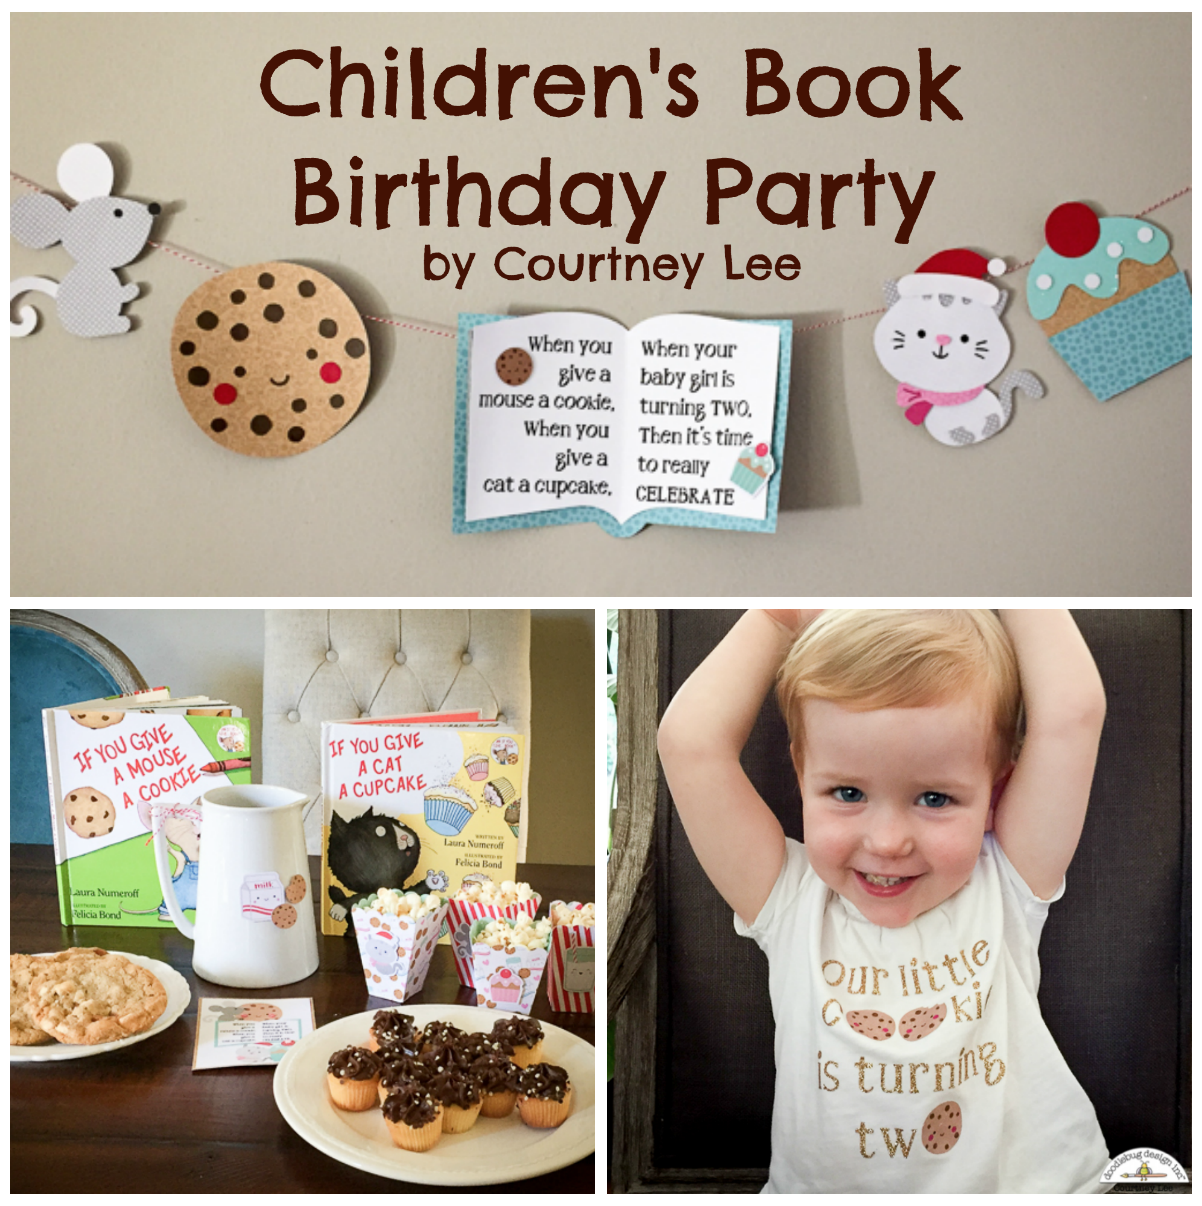 Doodlebug Design Inc Blog: Partying It Up: Children's Book Birthday Party With Courtney